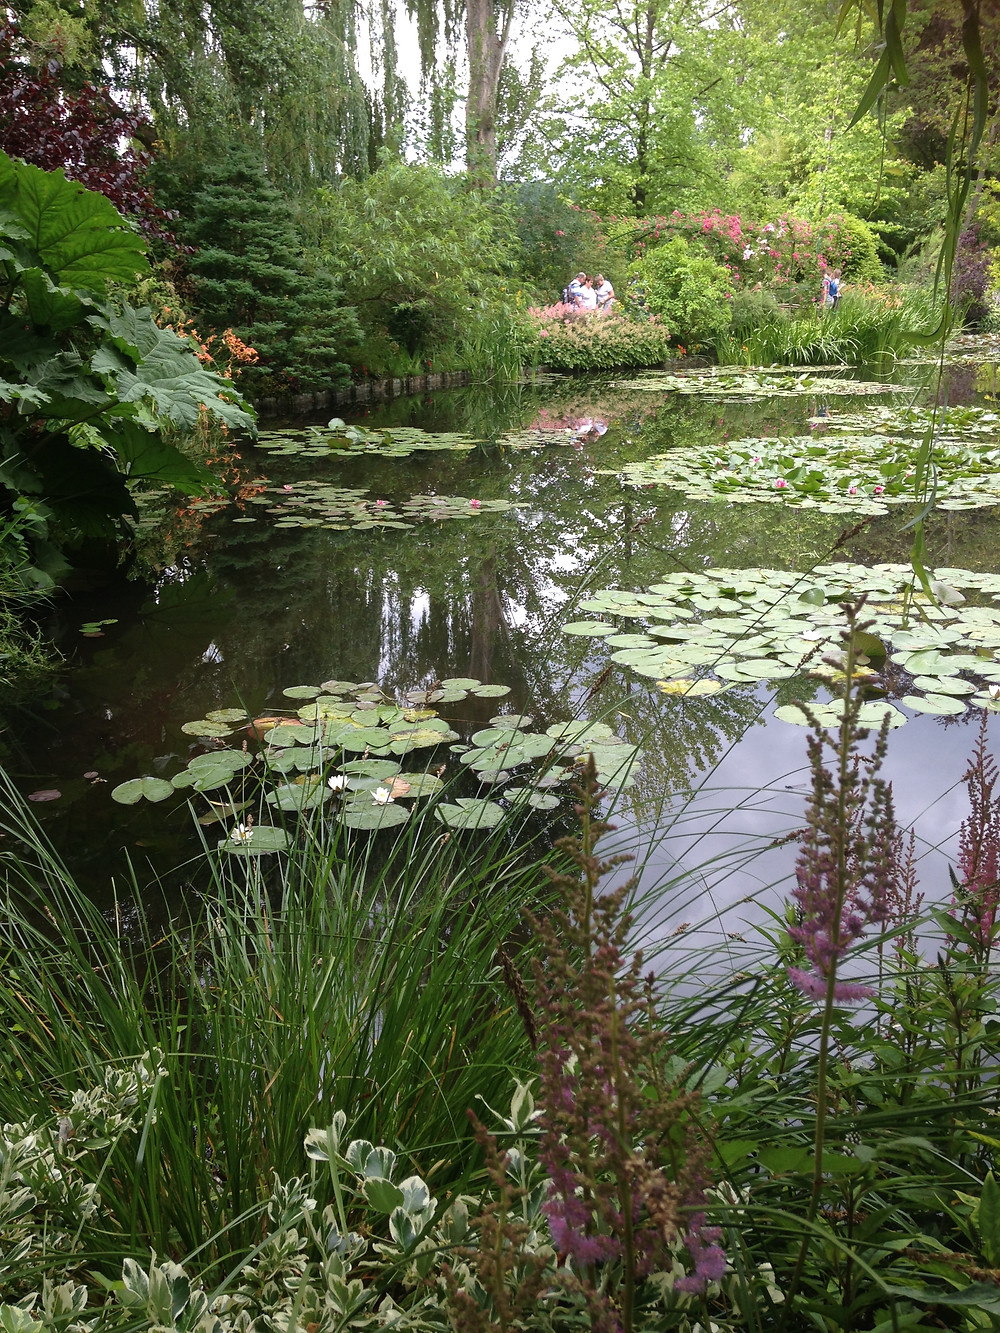 Monet's Lilypond, Giverny